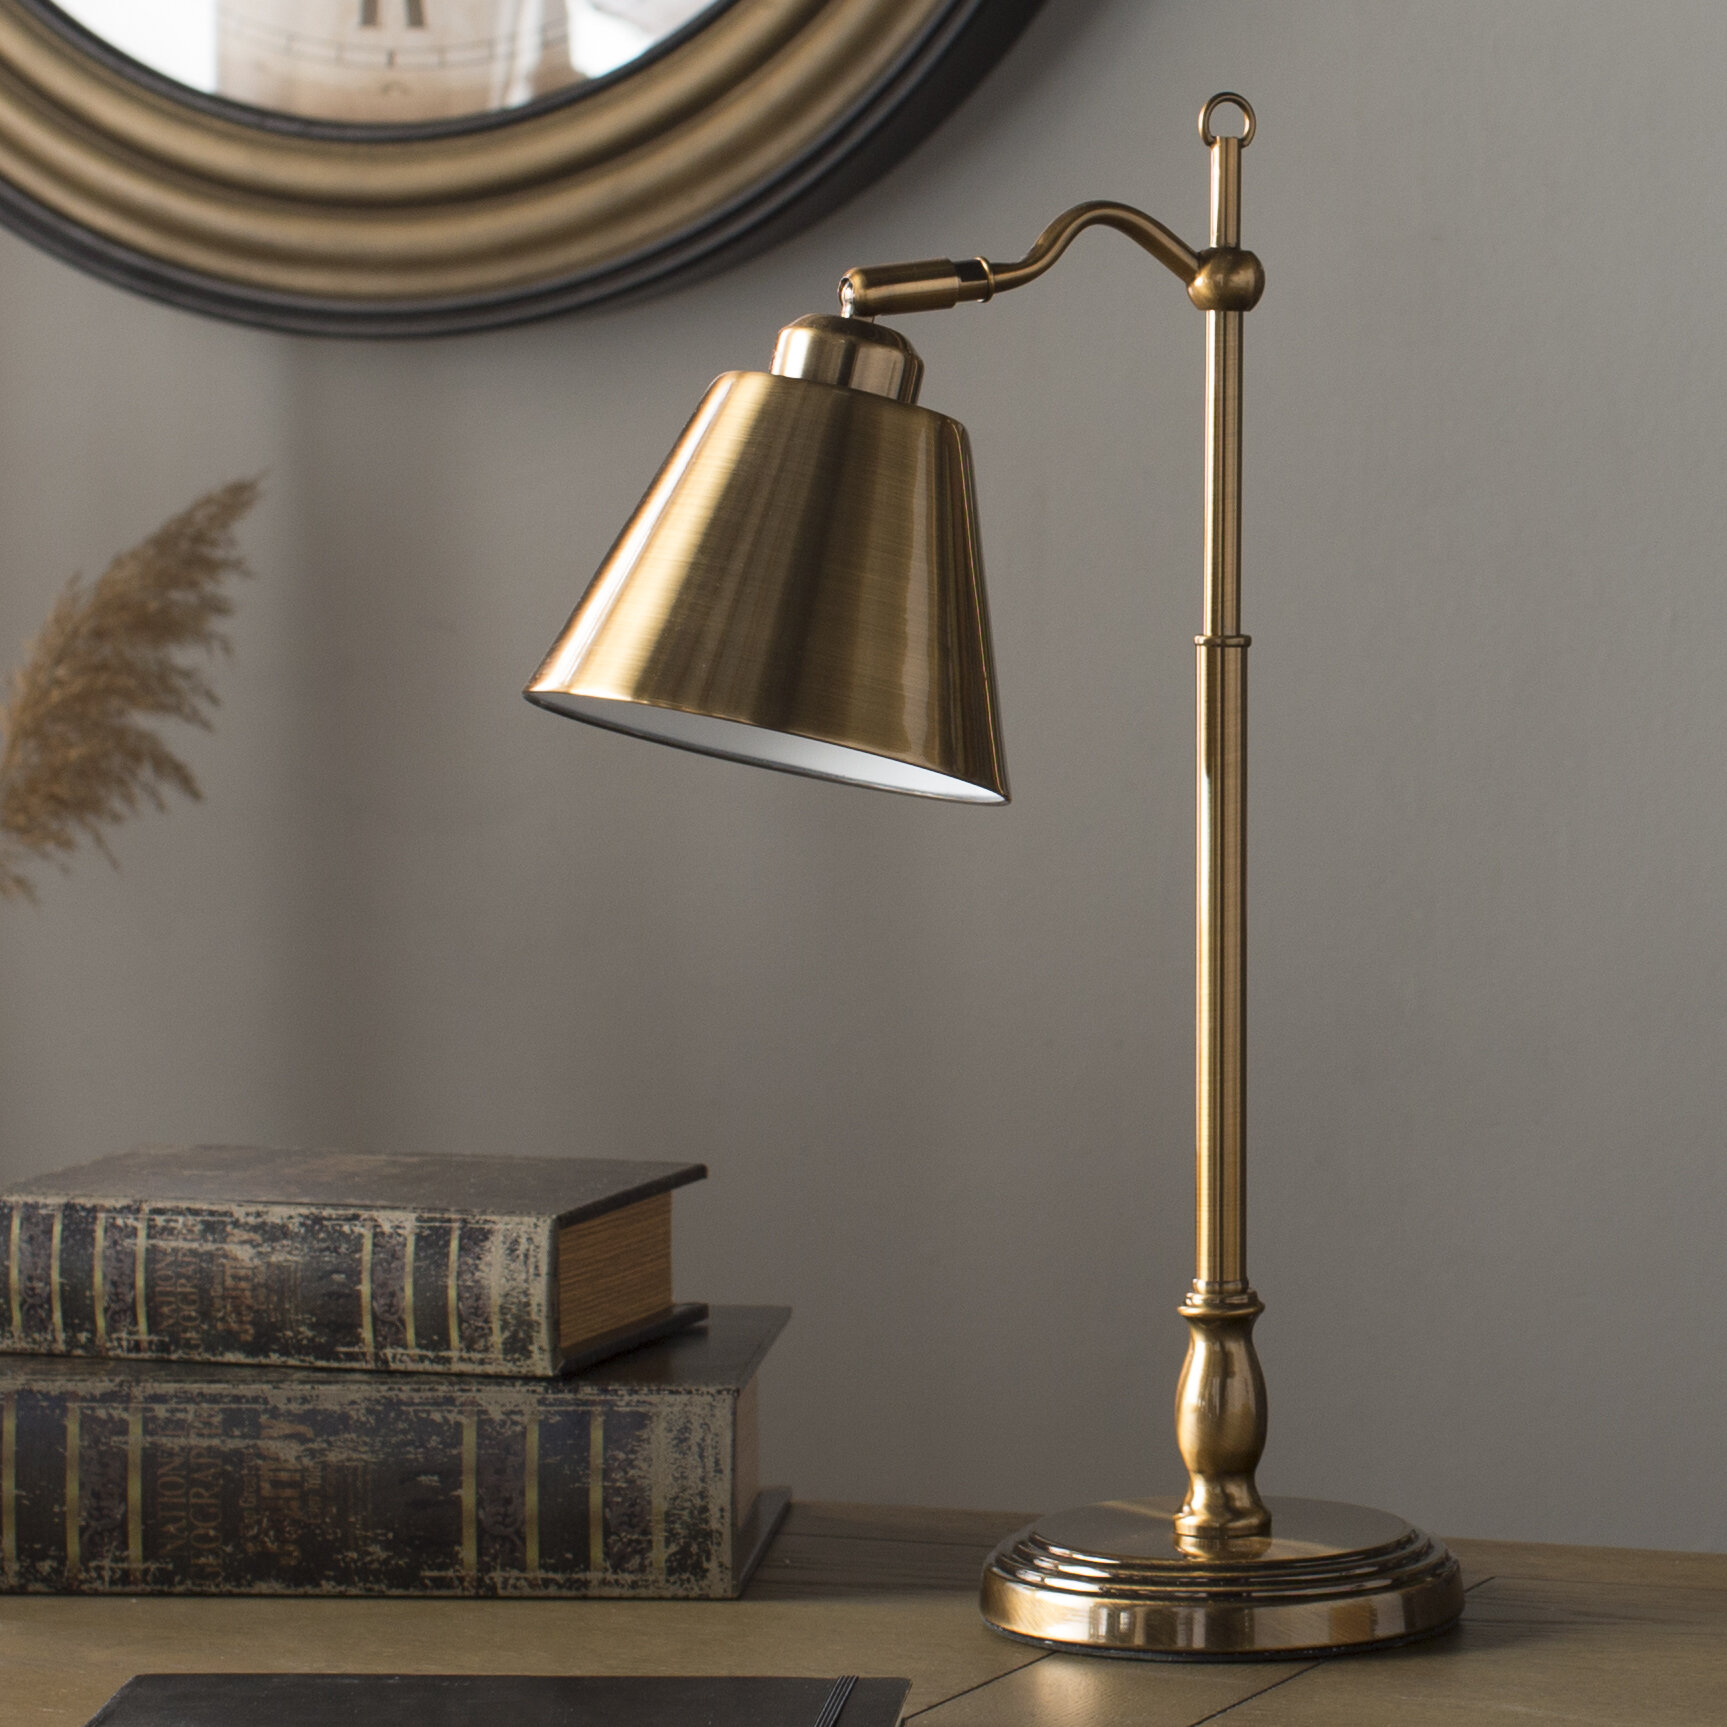 Hamilton 19 antique brass desk lamp reviews joss main